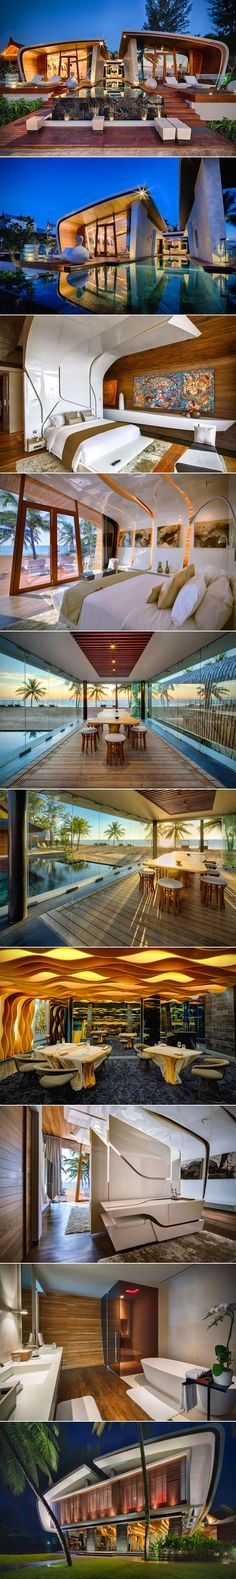 Iniala Beach House in Phuket, Thailand - treat your senses to any of the10 villas, but two of them – handled by A-cero – are especially noteworthy for their unique charm and layout. Both rooms offer decadent ocean views through massive windows, while the floors and the walls of the rooms are built with natural local wood. Amazing! I must go here one day!